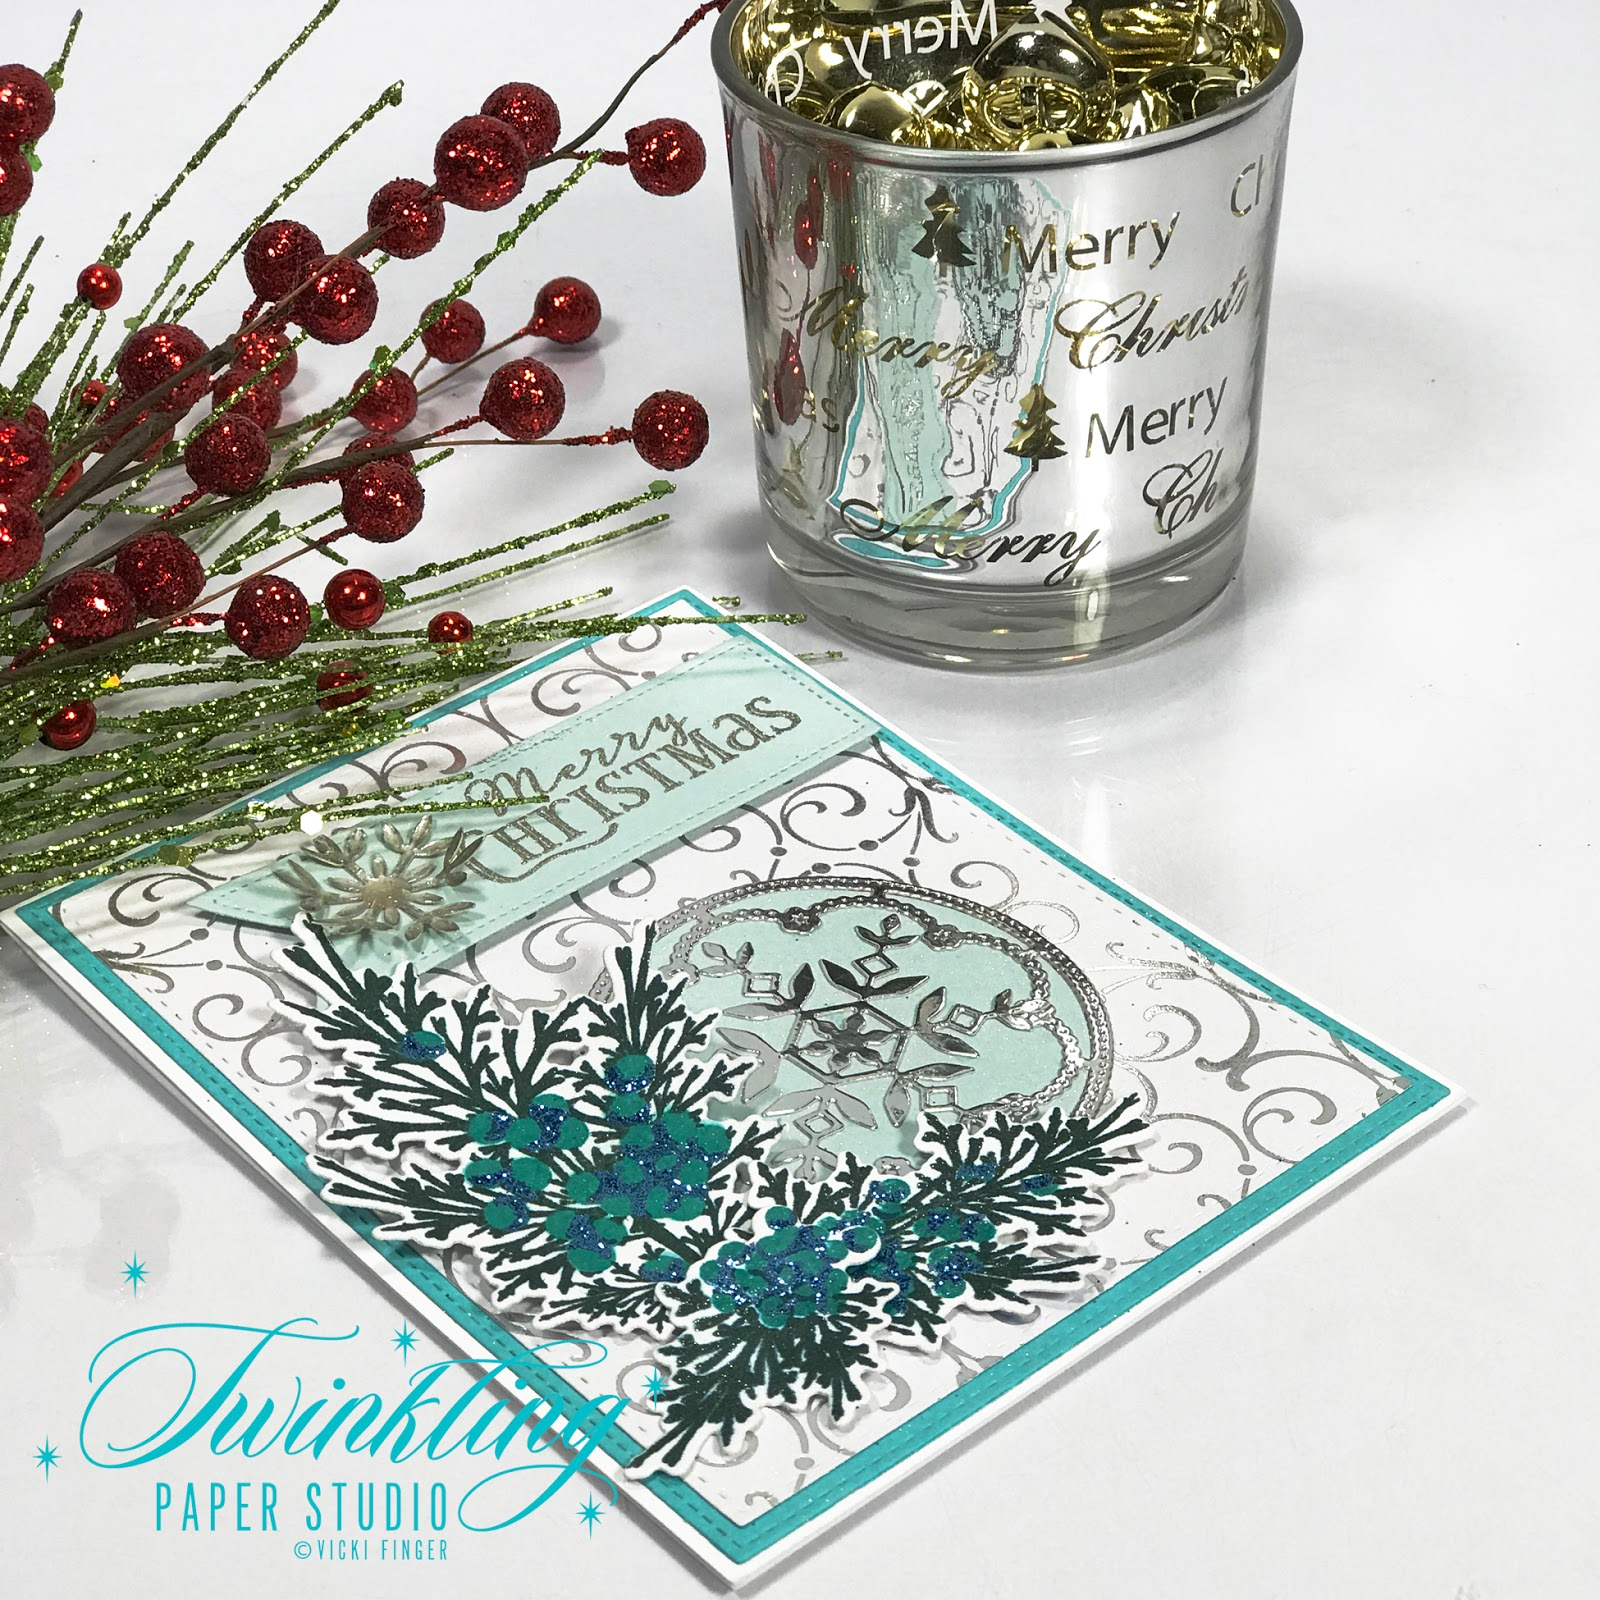 Cream colored cardstock paper studio - I Also Knew I Wanted To Use A White Or Silver Snowflake For My Epoxy Embellishment To Go With This So I Used A White And Silver Foiled Background Paper